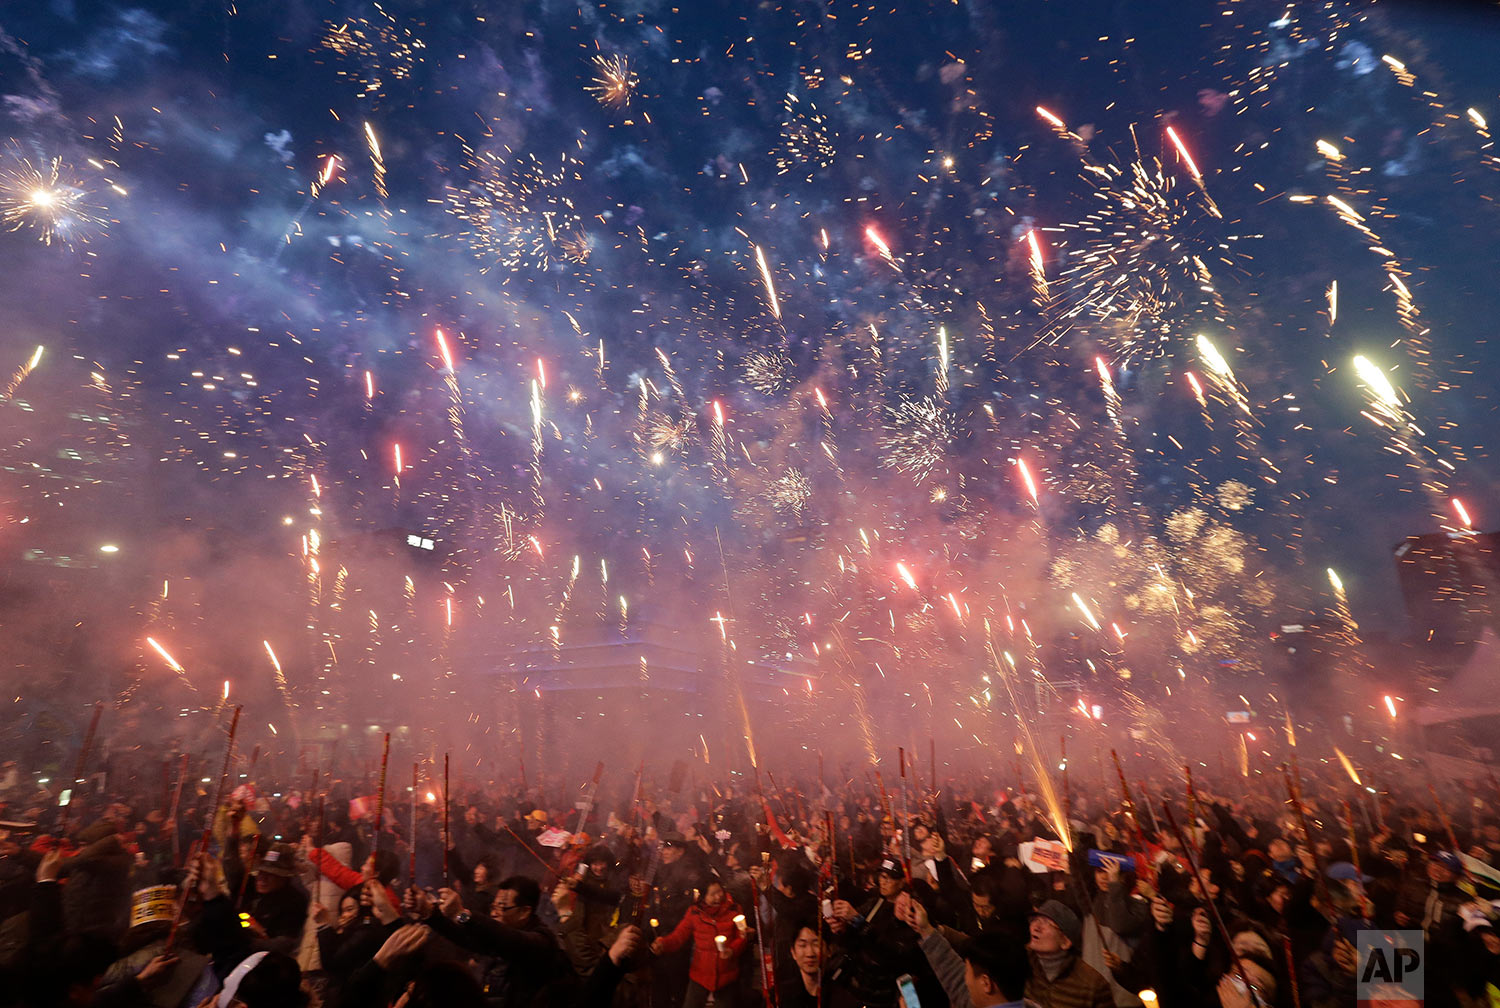 Protesters set off fireworks during a candle light vigil calling for impeached President Park Geun-hye's arrest in Seoul, South Korea, Saturday, March 11, 2017. South Korean police on Saturday braced for more violence between opponents and supporters of ousted President Park Geun-hye, who was stripped of her powers by the Constitutional Court over a corruption scandal that has plunged the country into a political turmoil. (AP Photo/Ahn Young-joon)